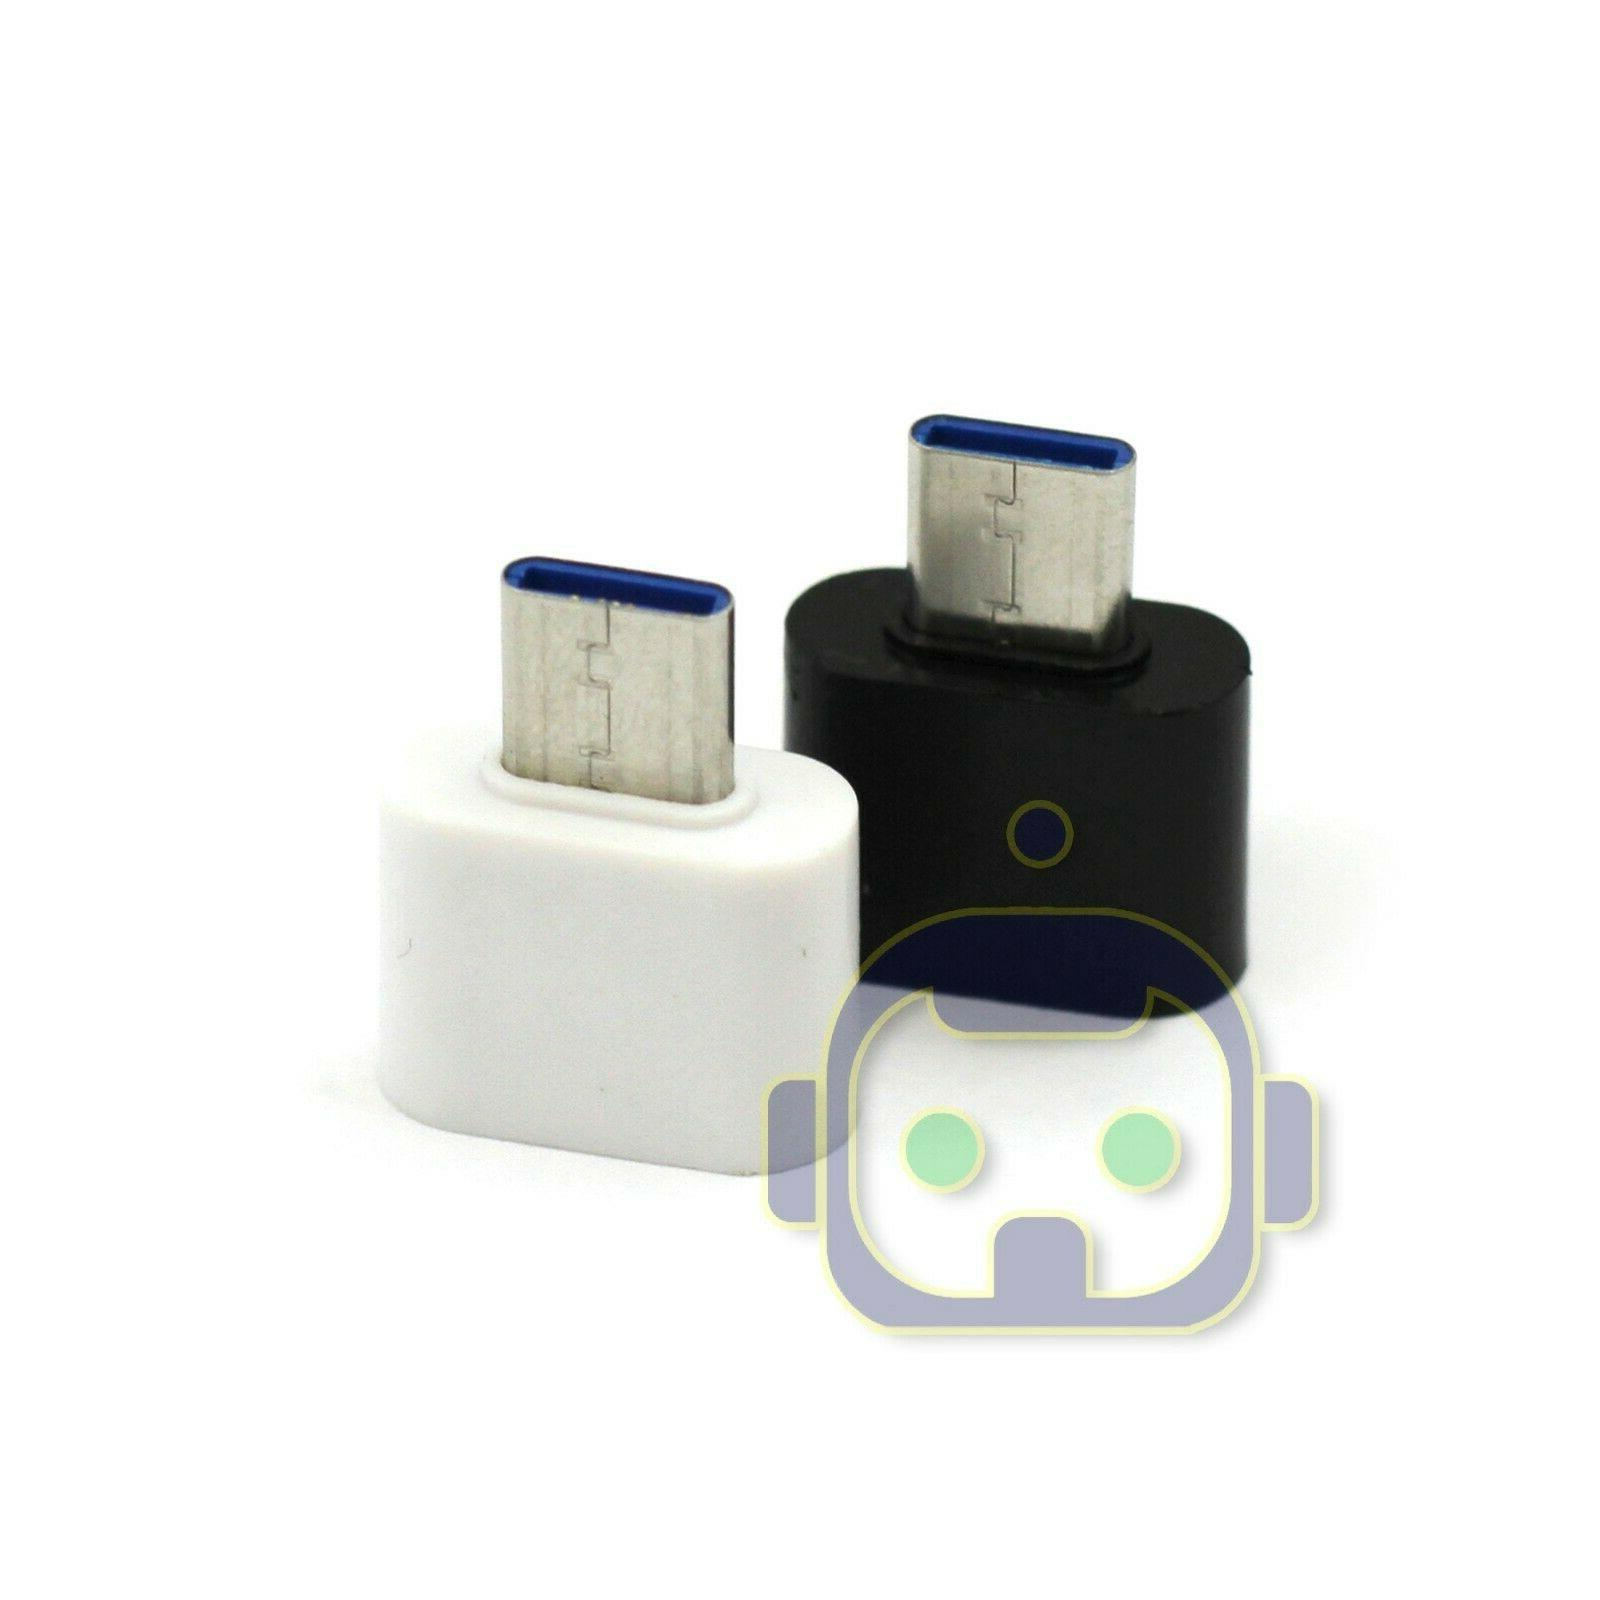 USB Male USB Adapter OTG Function for